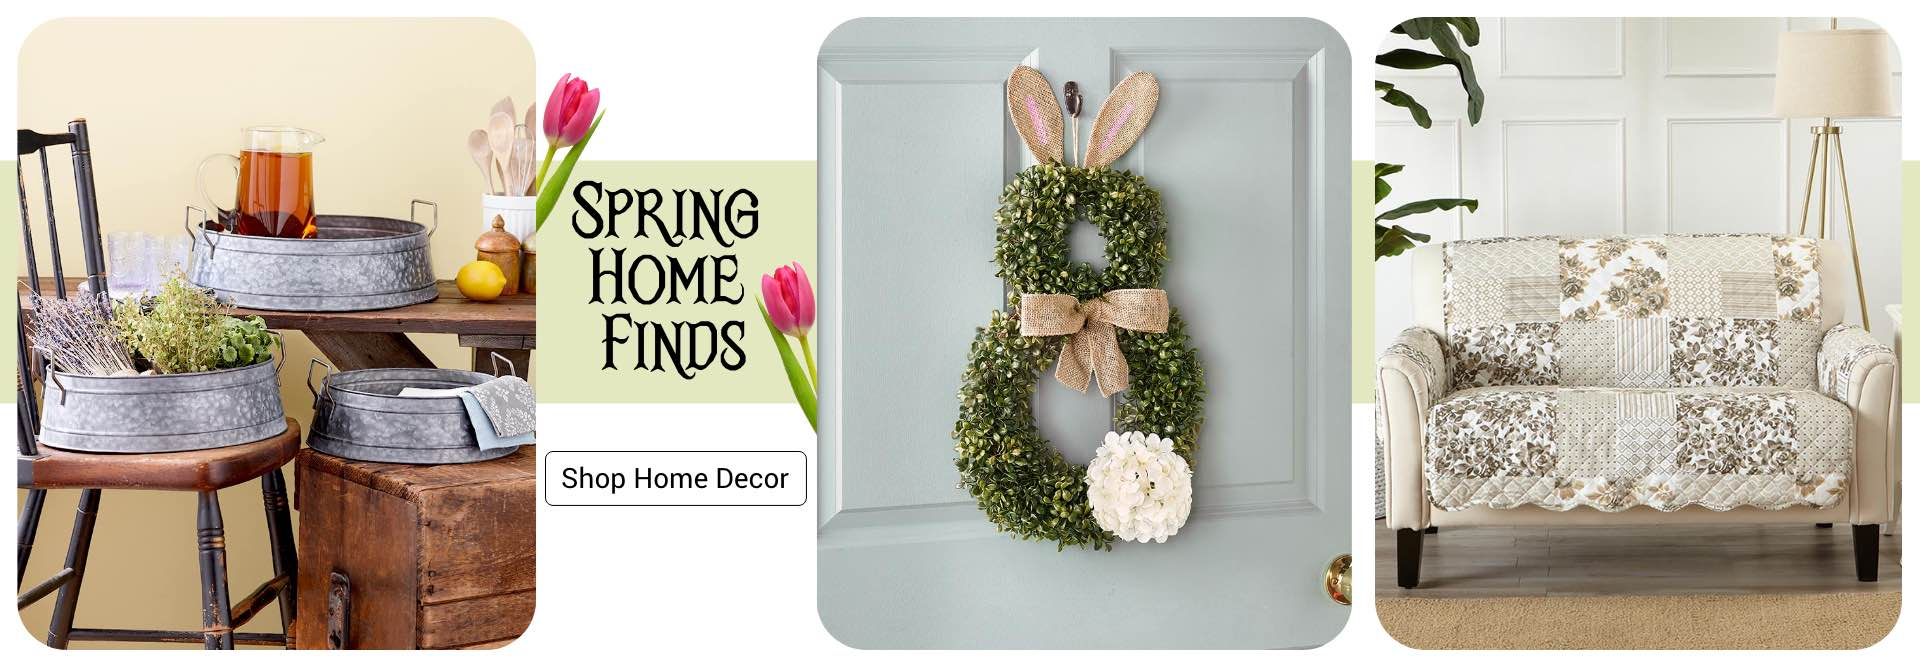 Spring Home Finds Shop Home Decor